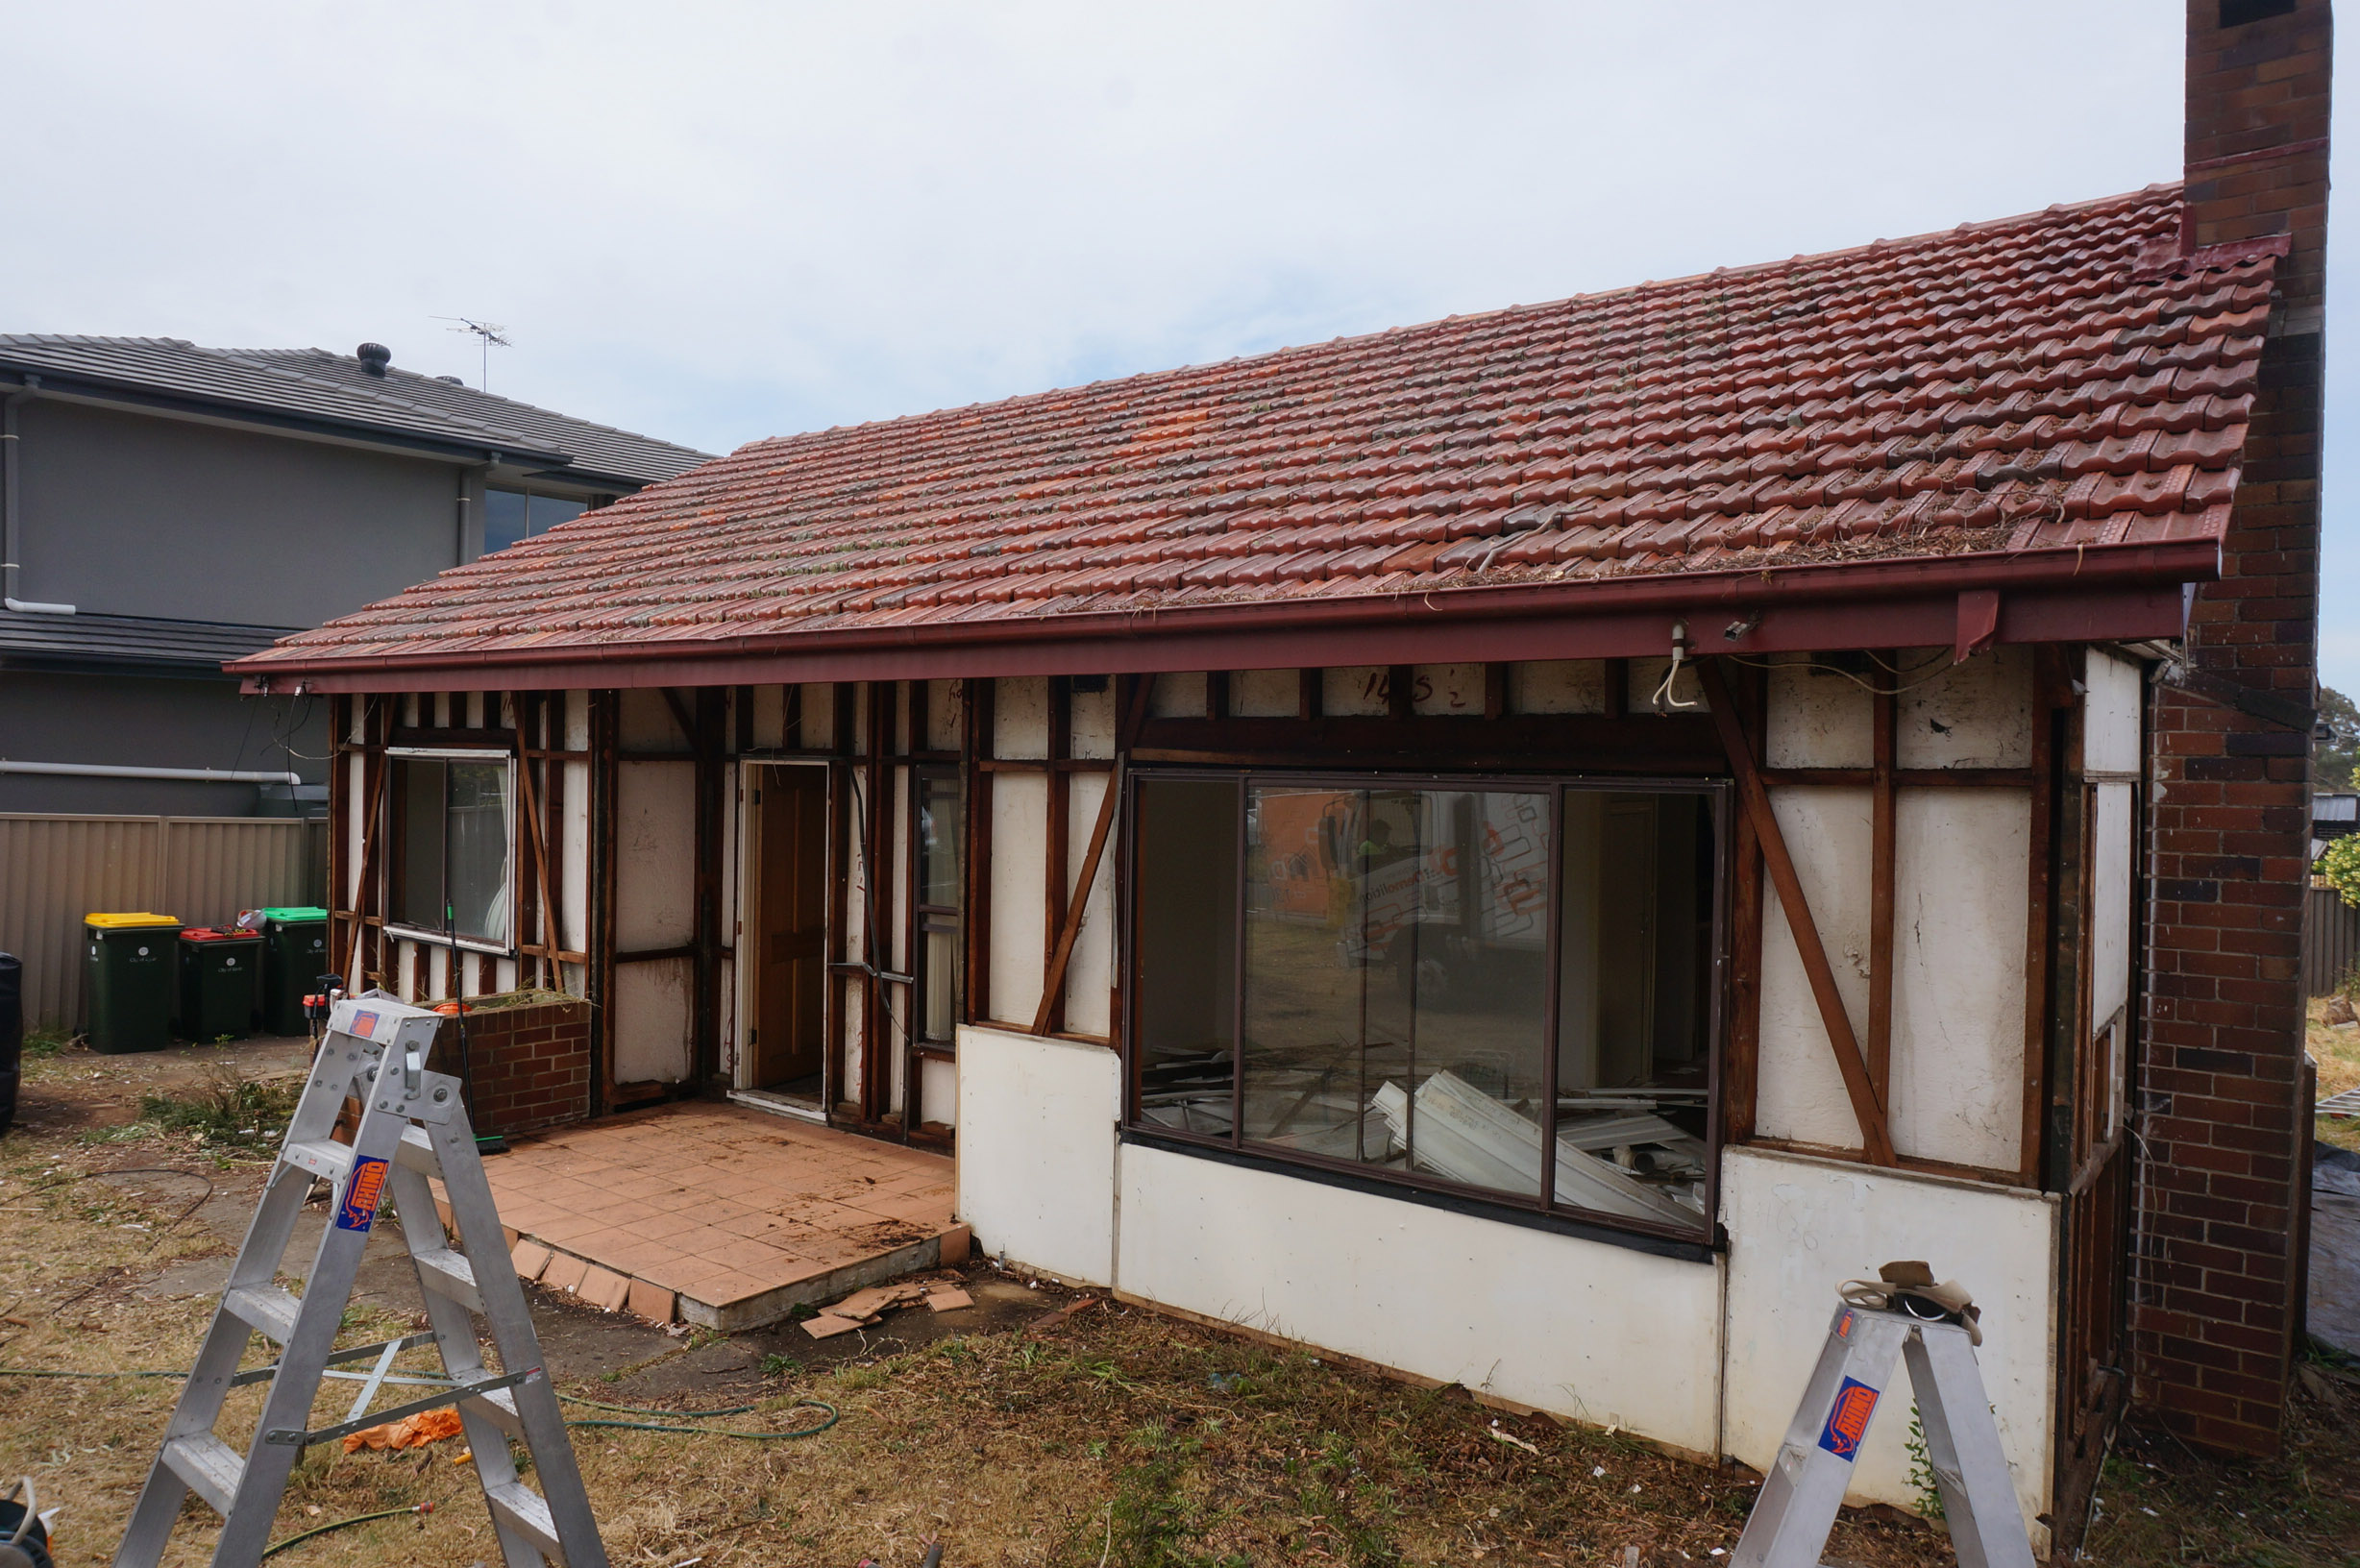 House being stripped of Asbestos